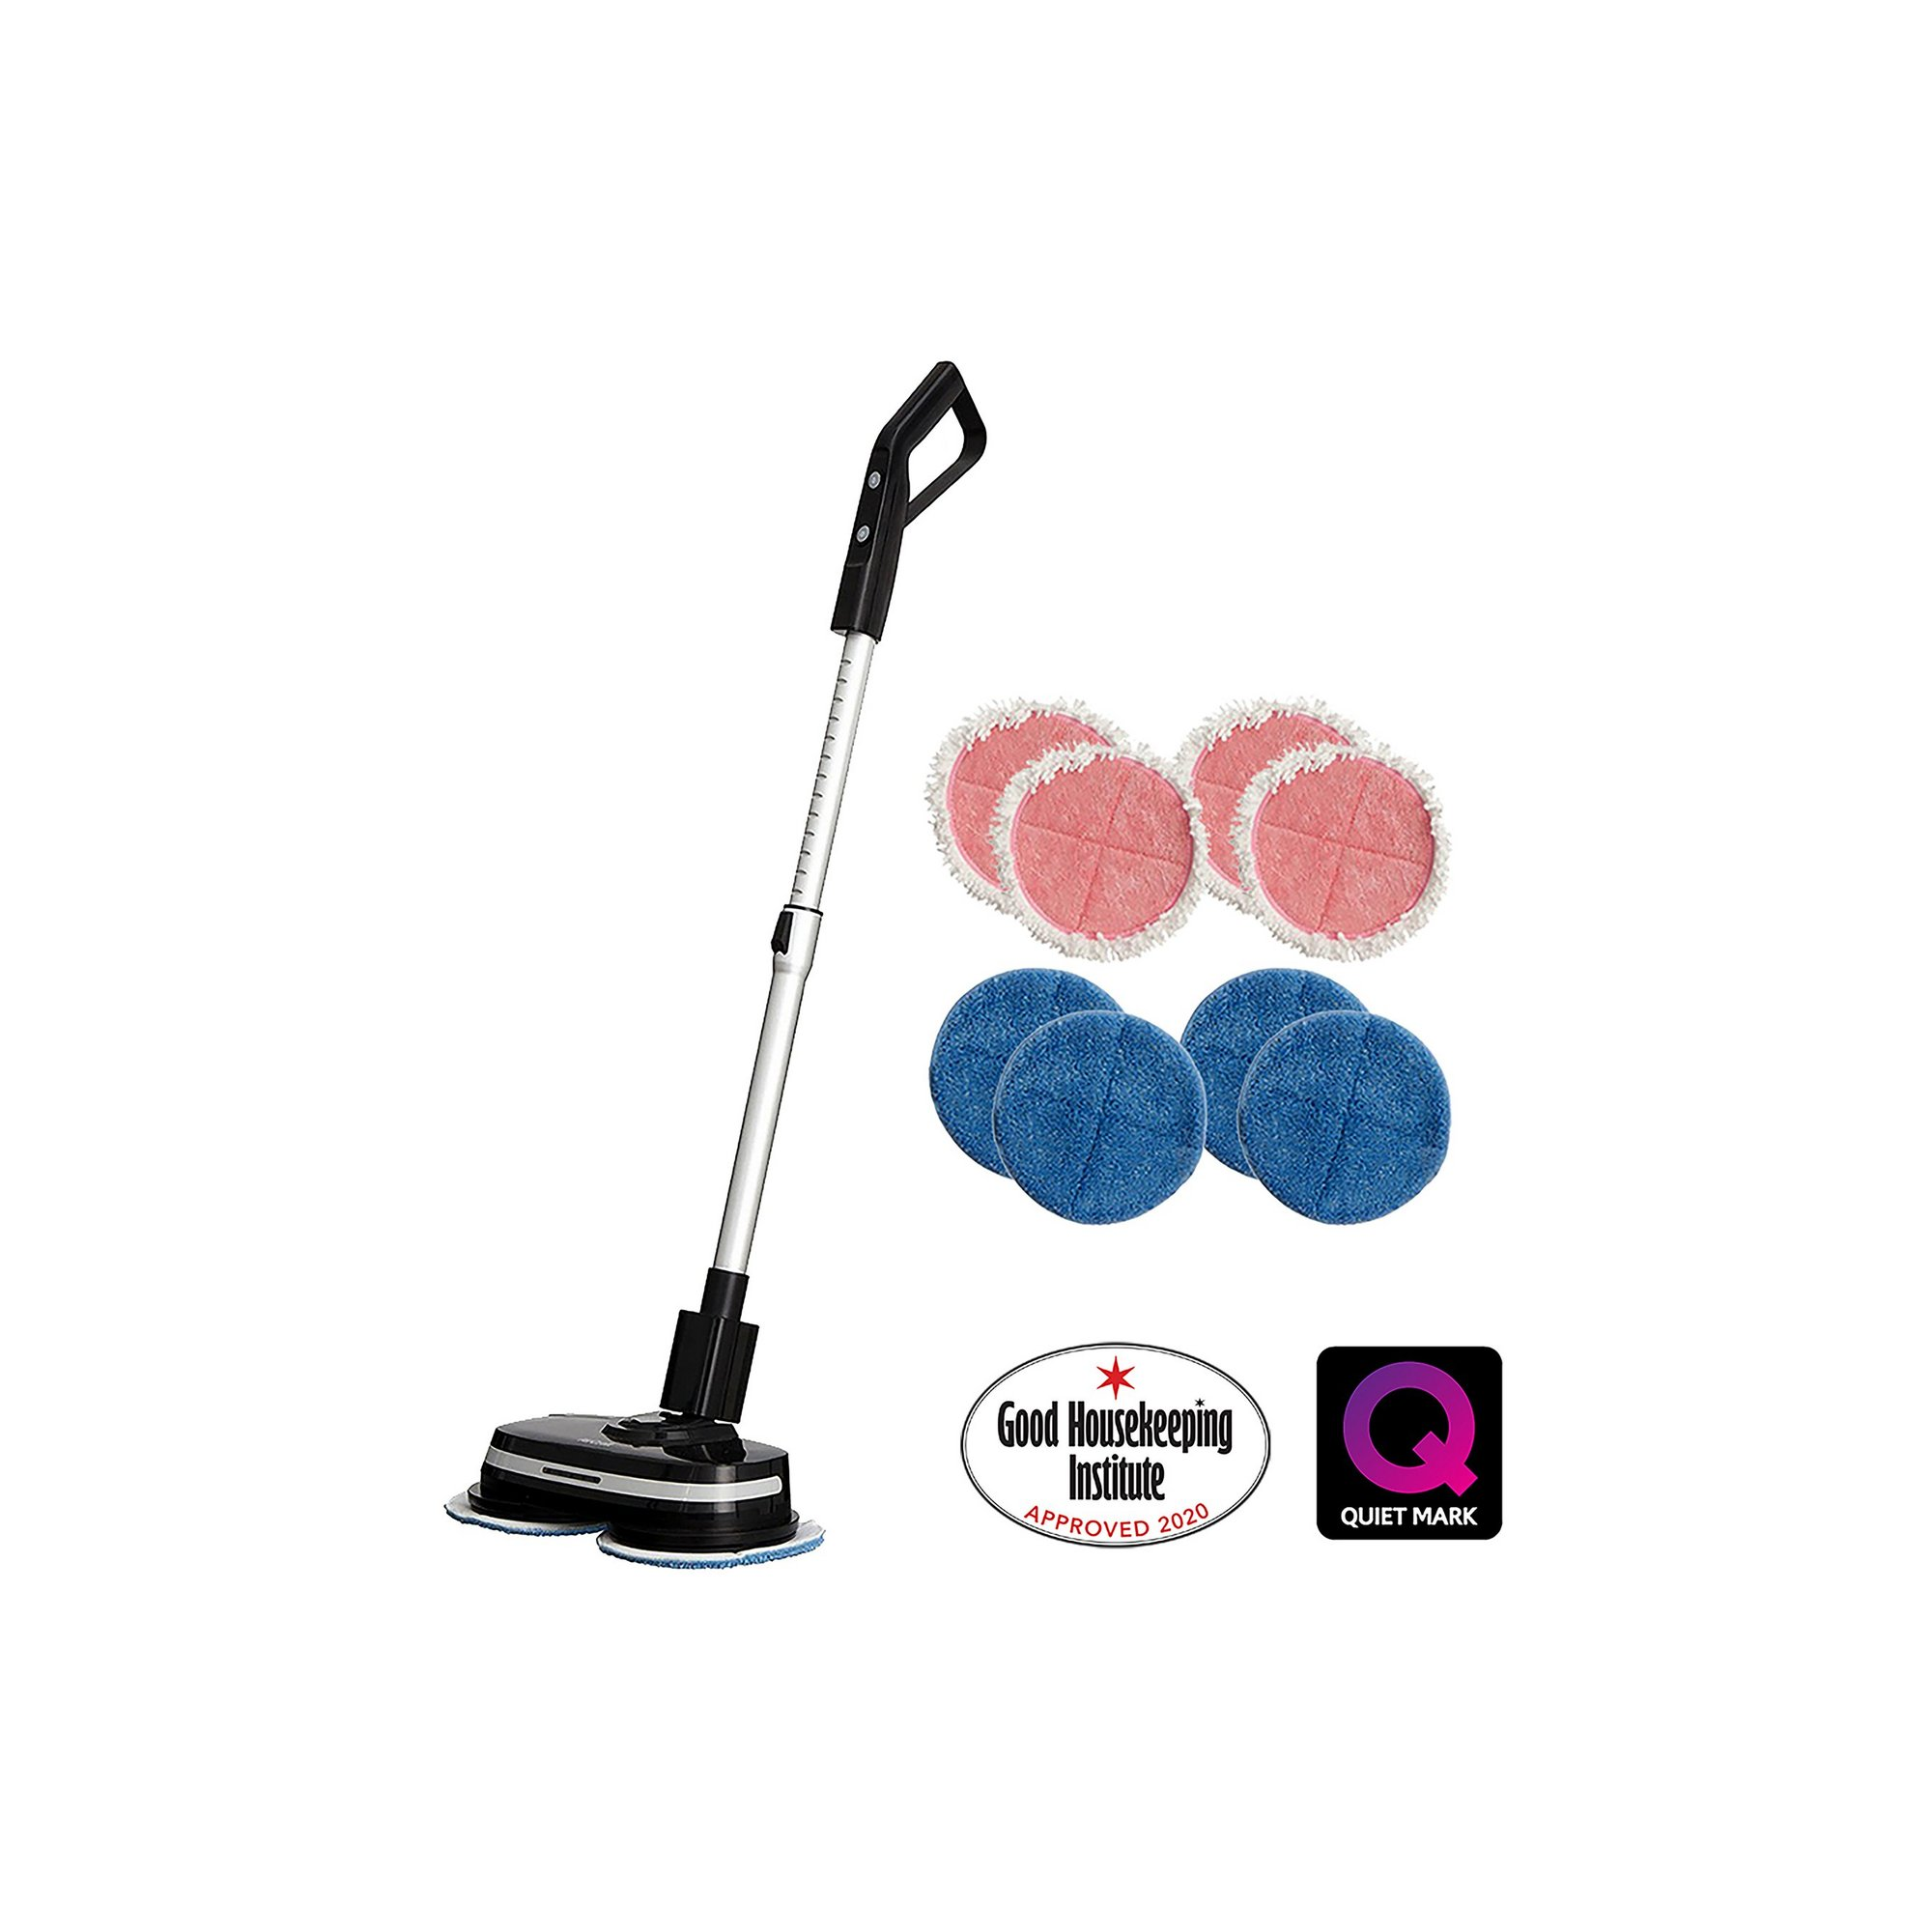 Image of AirCraft PowerGlide Cordless Hard Floor Cleaner with Extra Pads